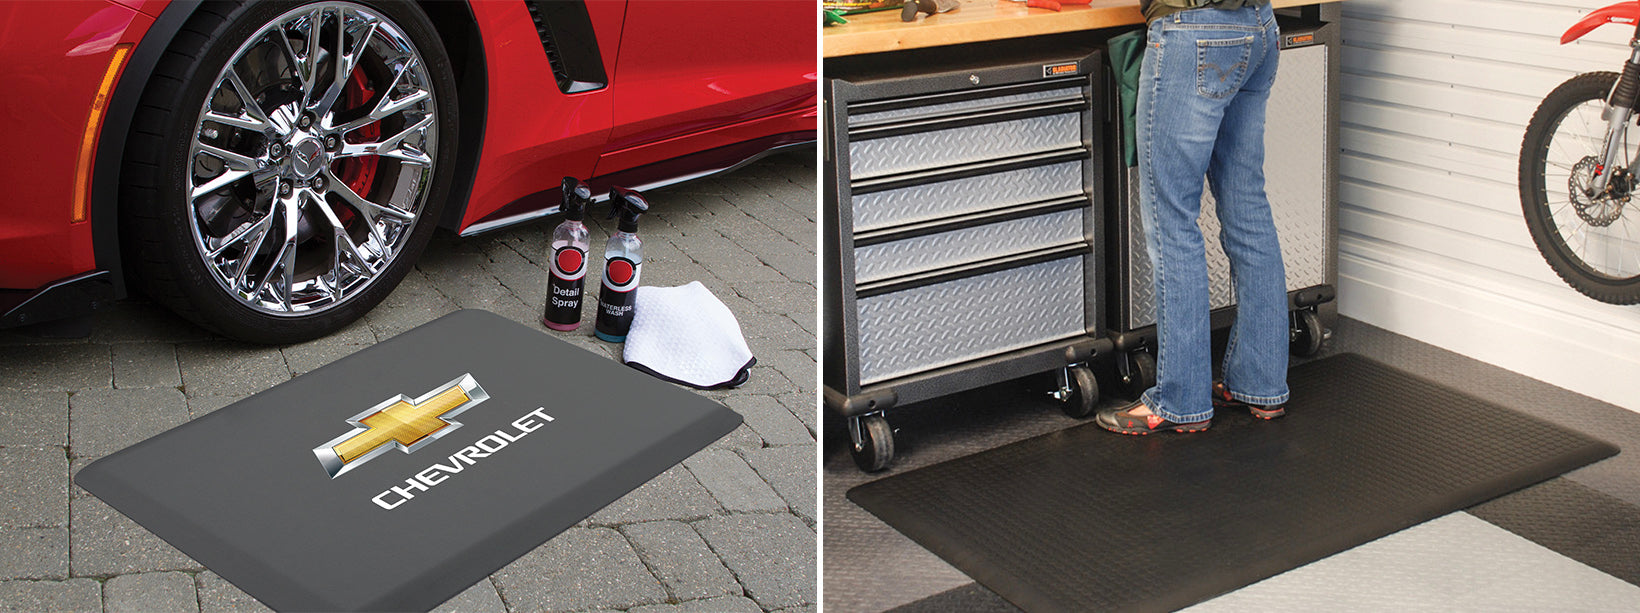 Licensed WellnessMat to trick out your garage and Maxum mat for industrial strength comfort